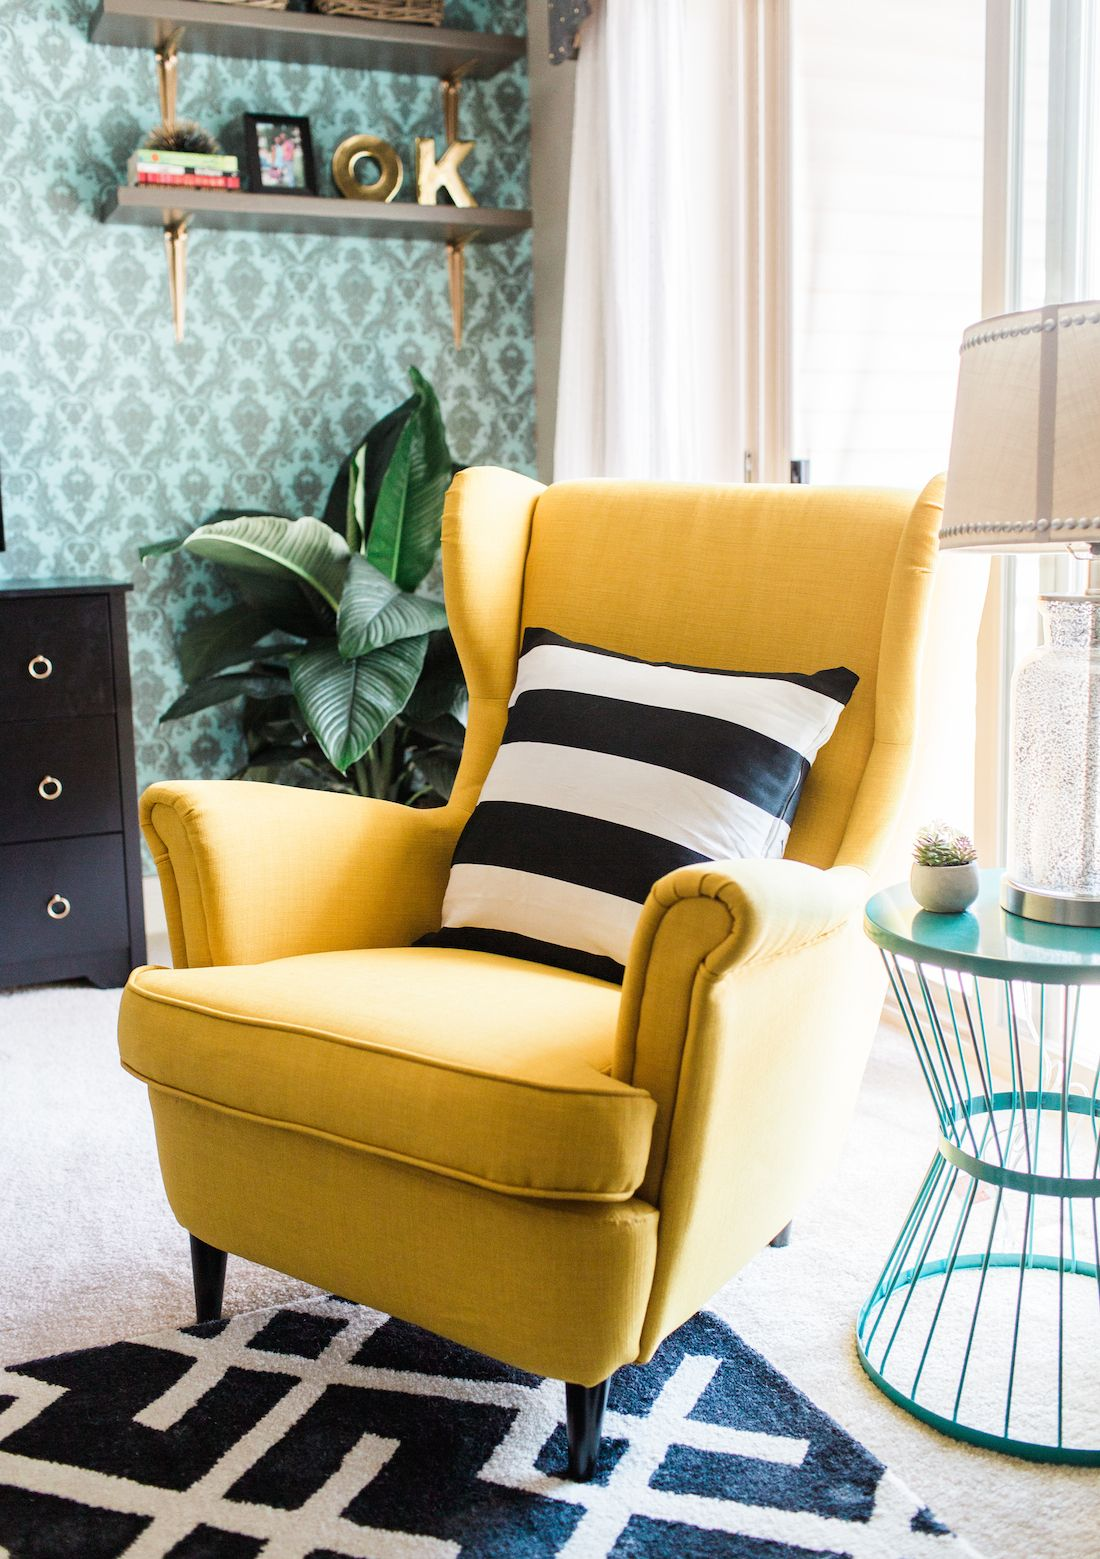 Charmant Dial Up Color In A Bold Way With A Bright Accent Chair. The East Coast  Creative Lightened And Brightened A Formerly Dark Rental Apartment With The  Help Of A ...